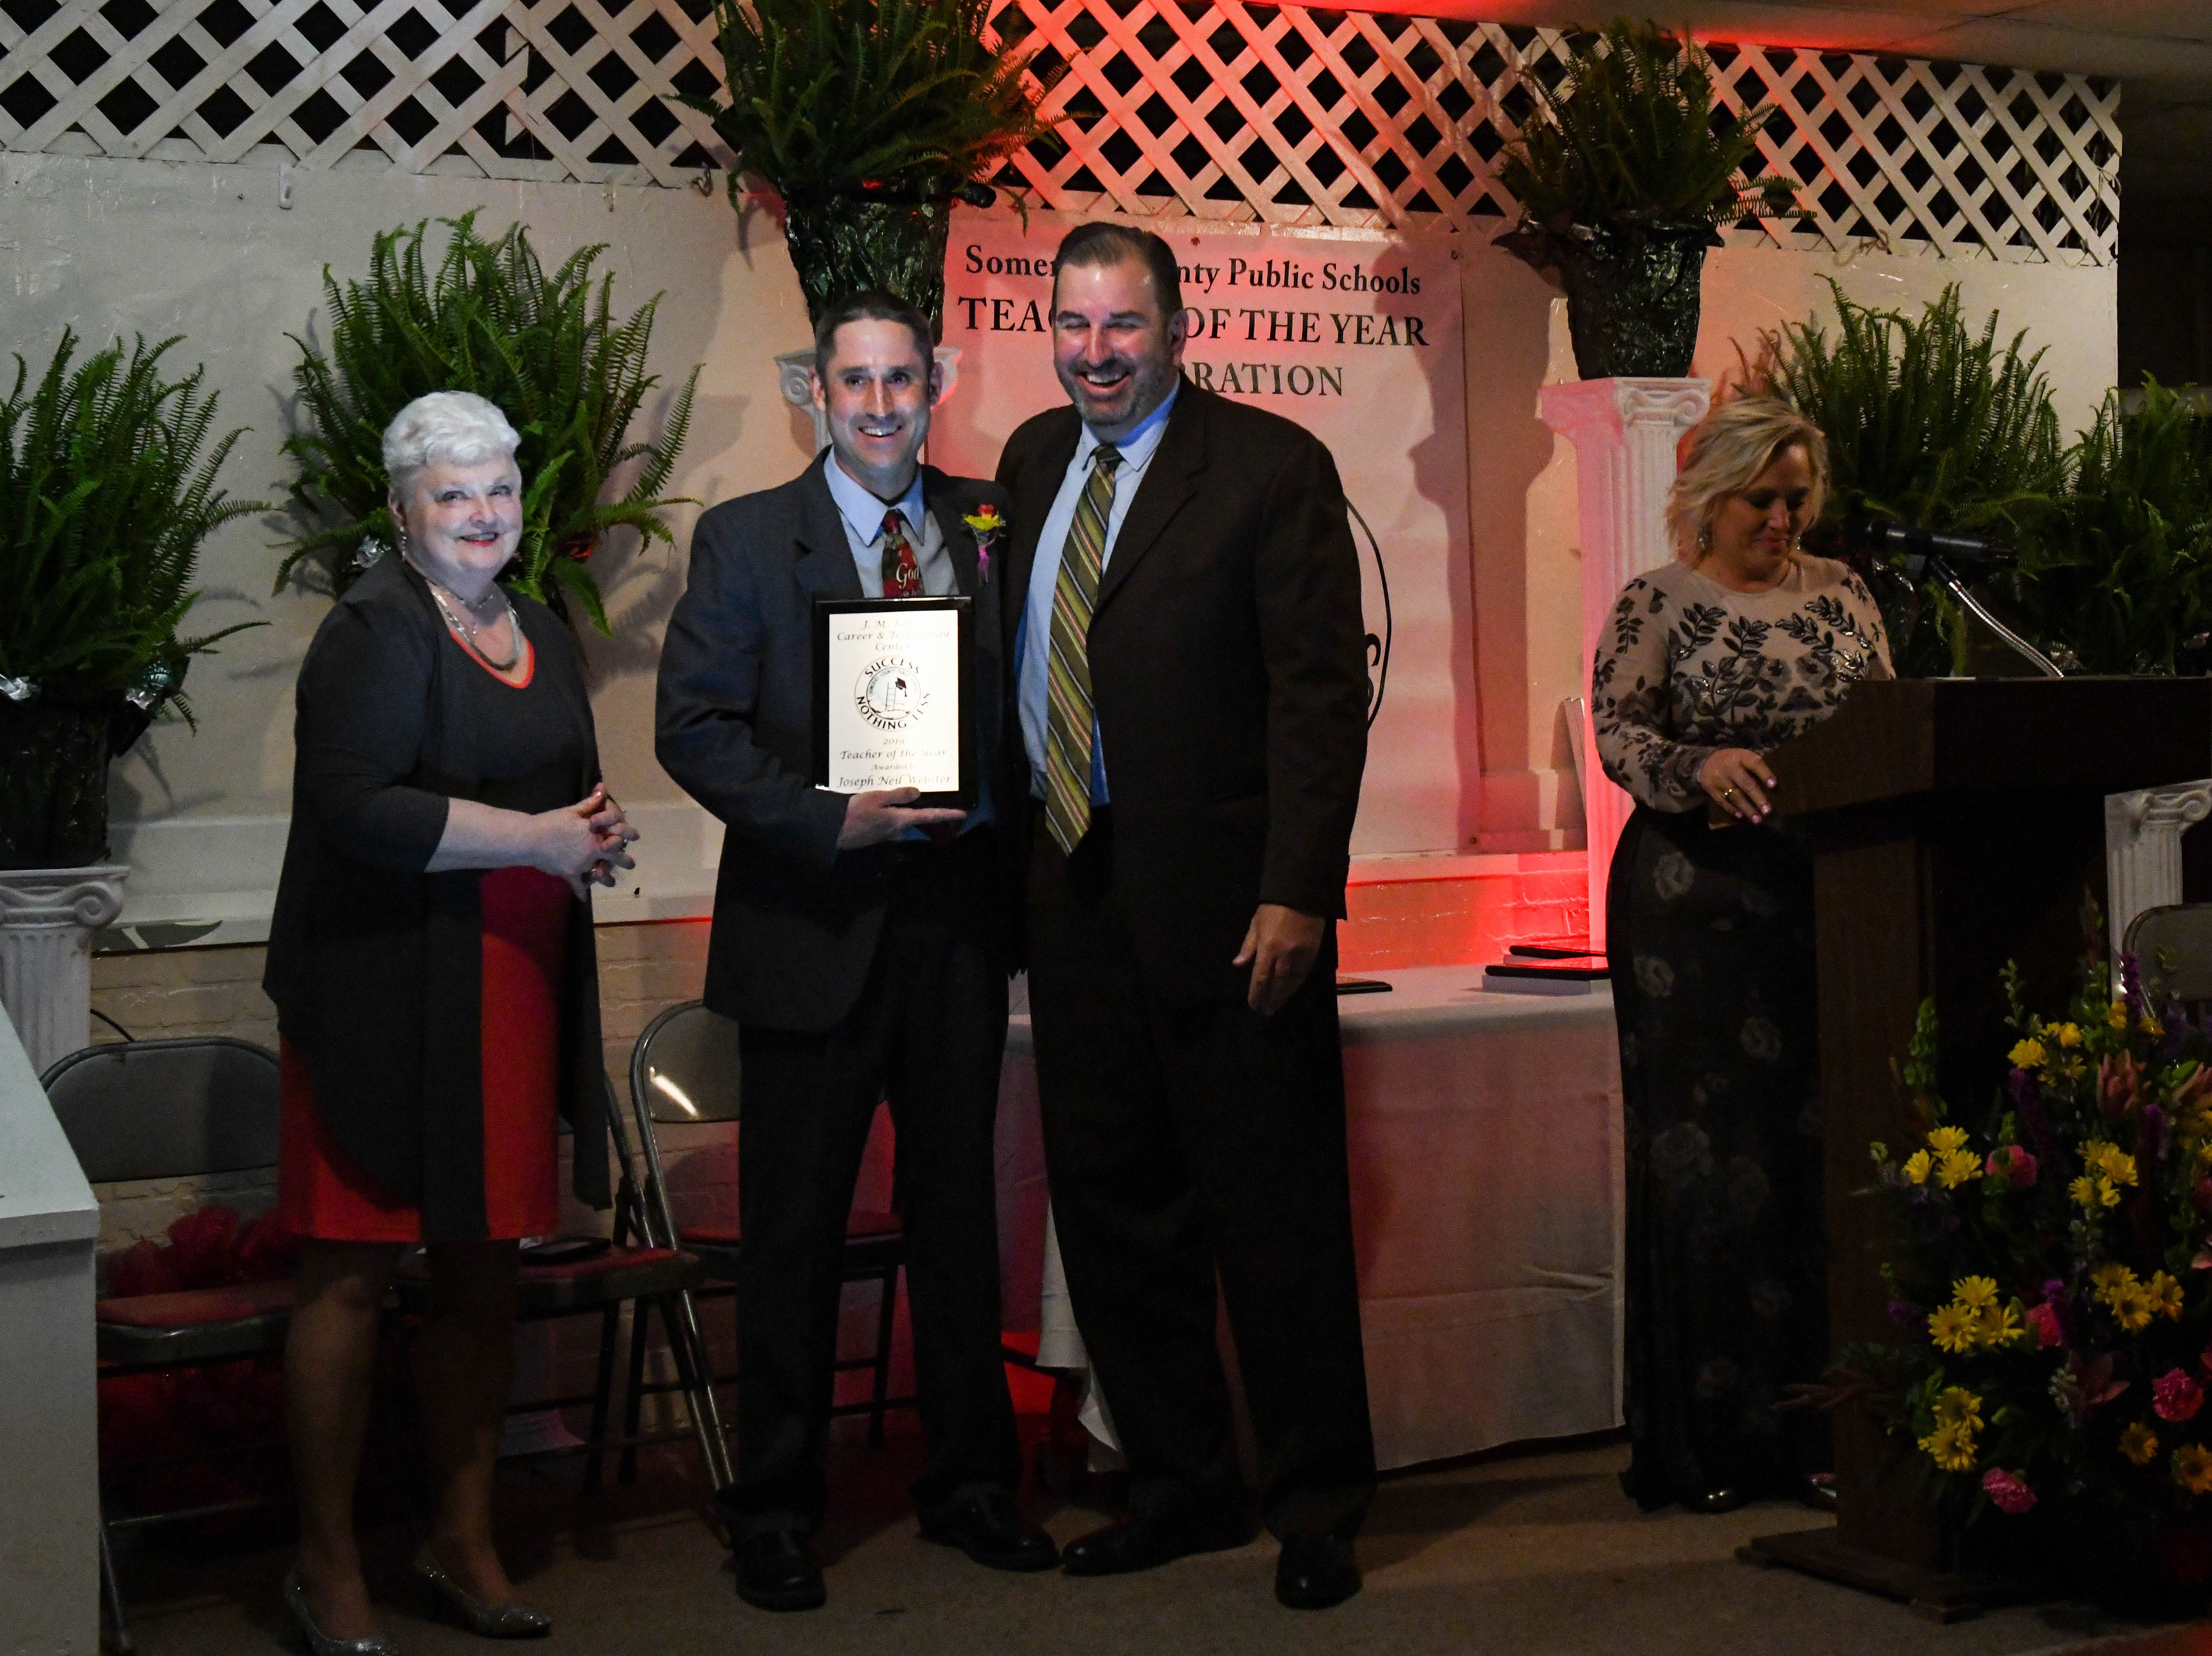 Tawes Technology teacher Joseph Webster receives a plaque for his teacher of the year nomination at the banquet on Friday, April 5, 2019.